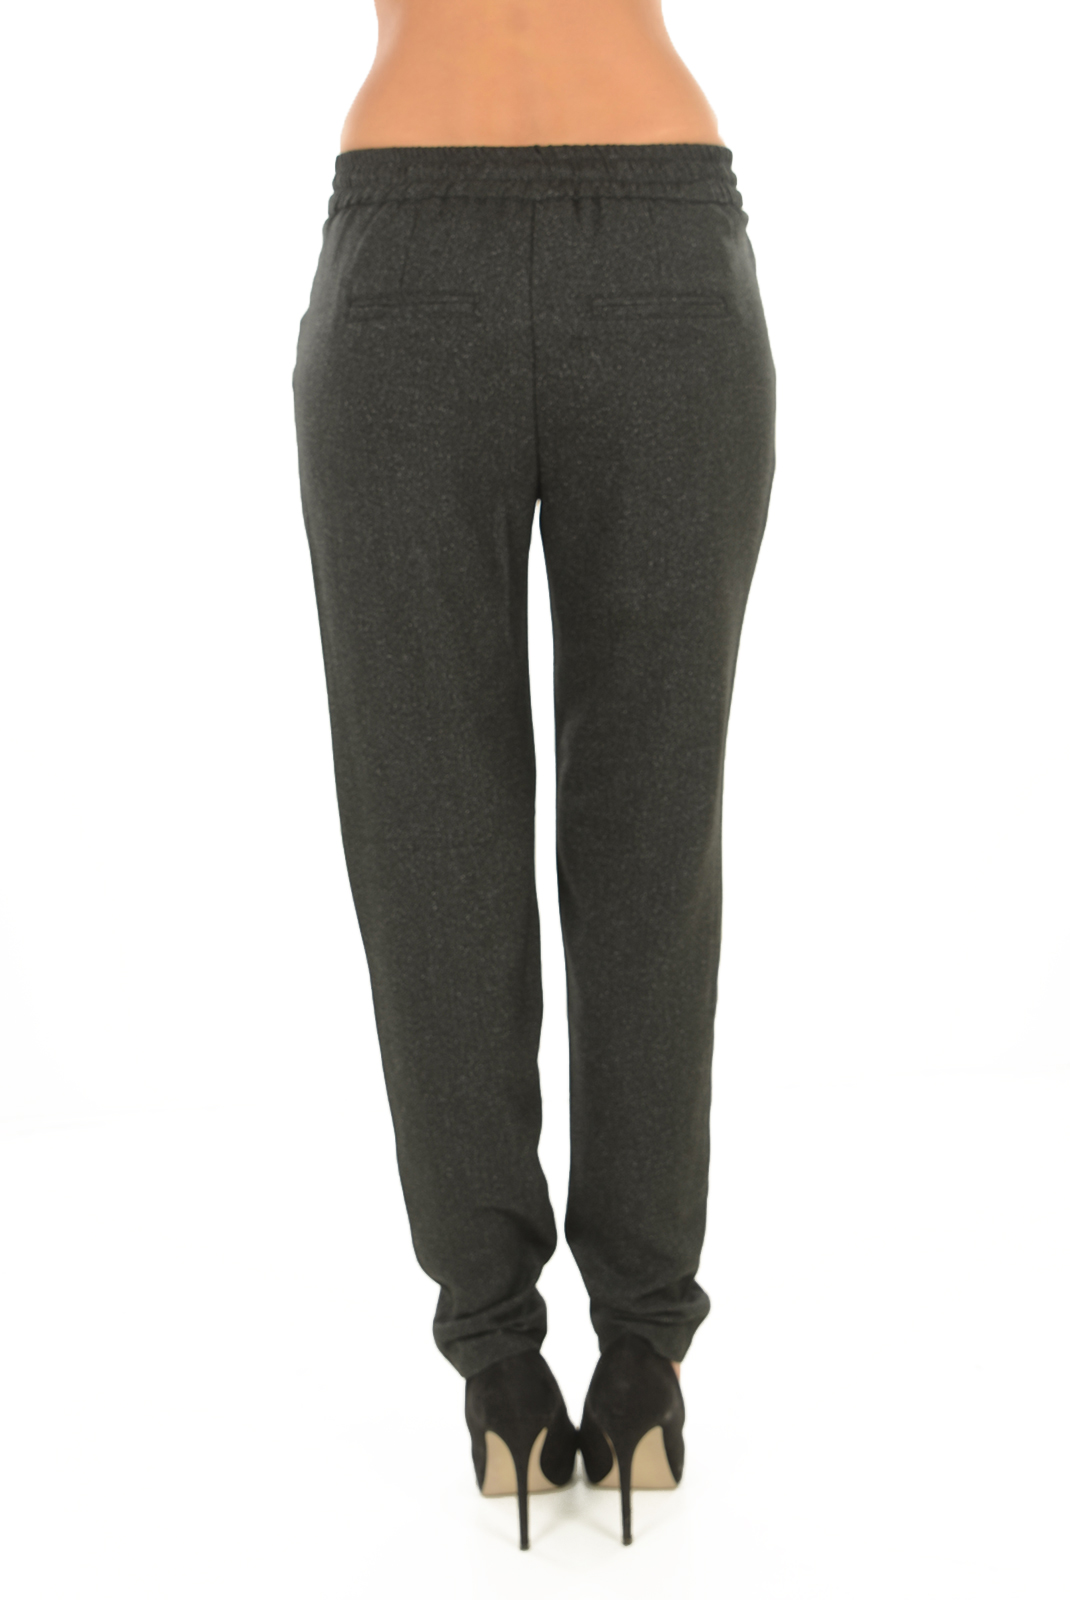 Pantalons  Vero moda RORY NW LOOSE SP STRING PANT BLACK/SALT AND P